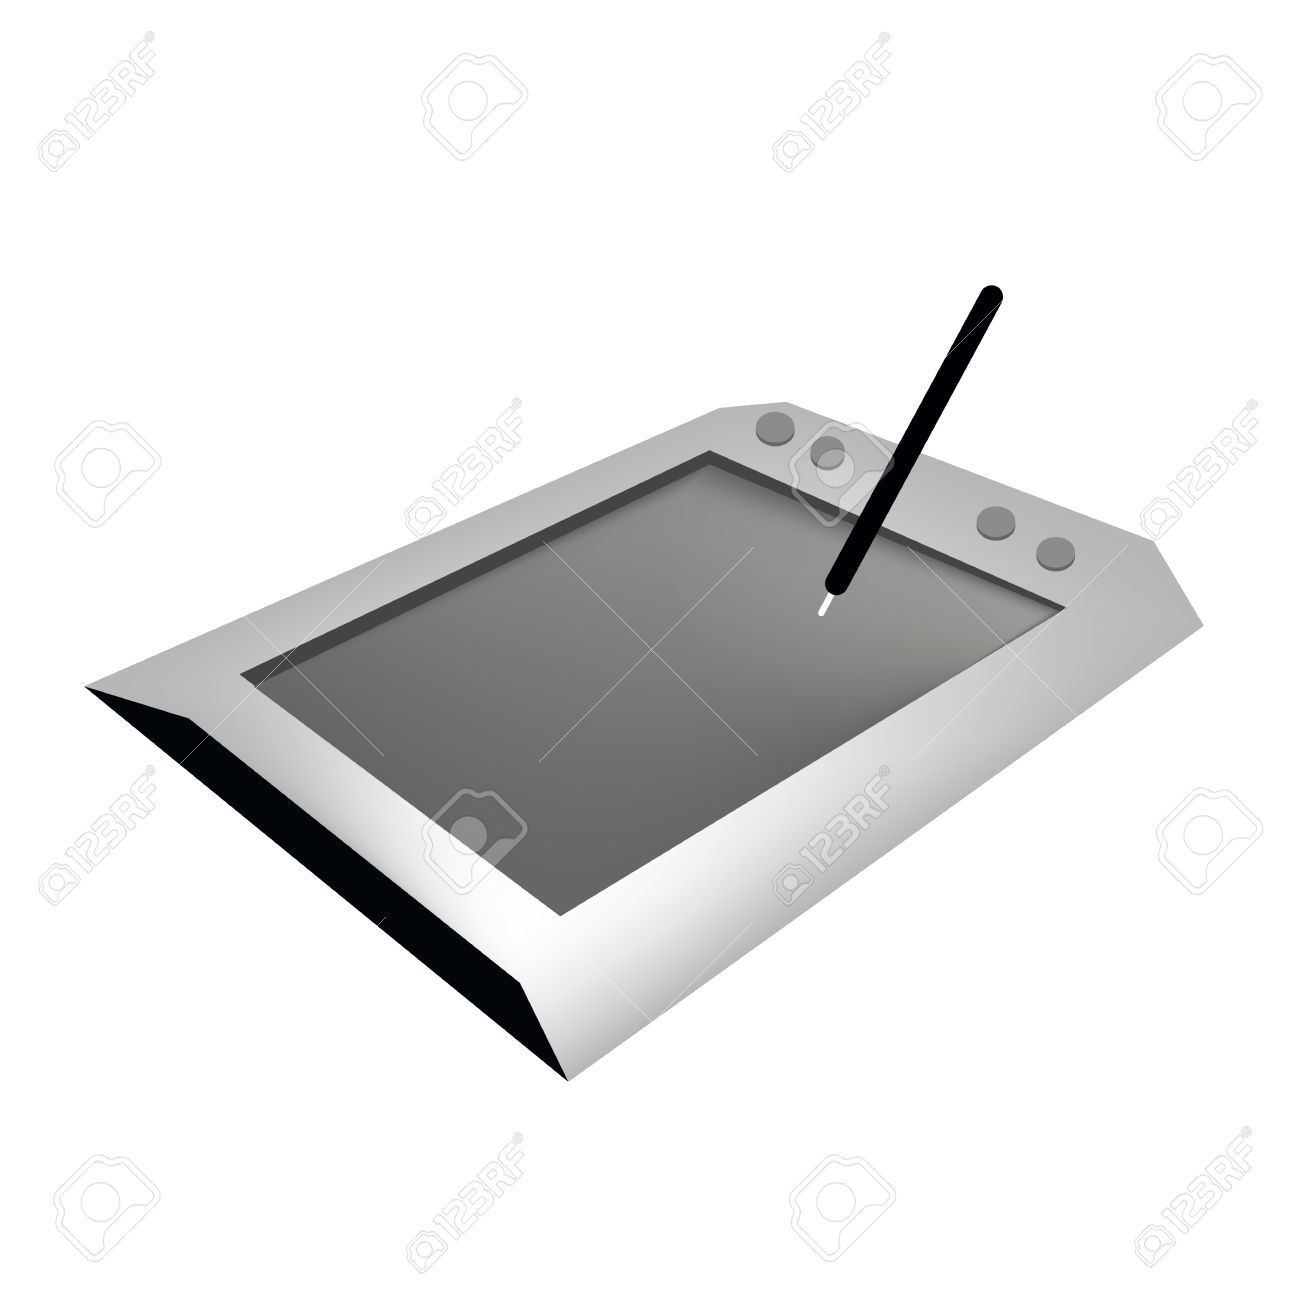 Computer And Technology, Professional Graphics Tablet Or Digitizer.